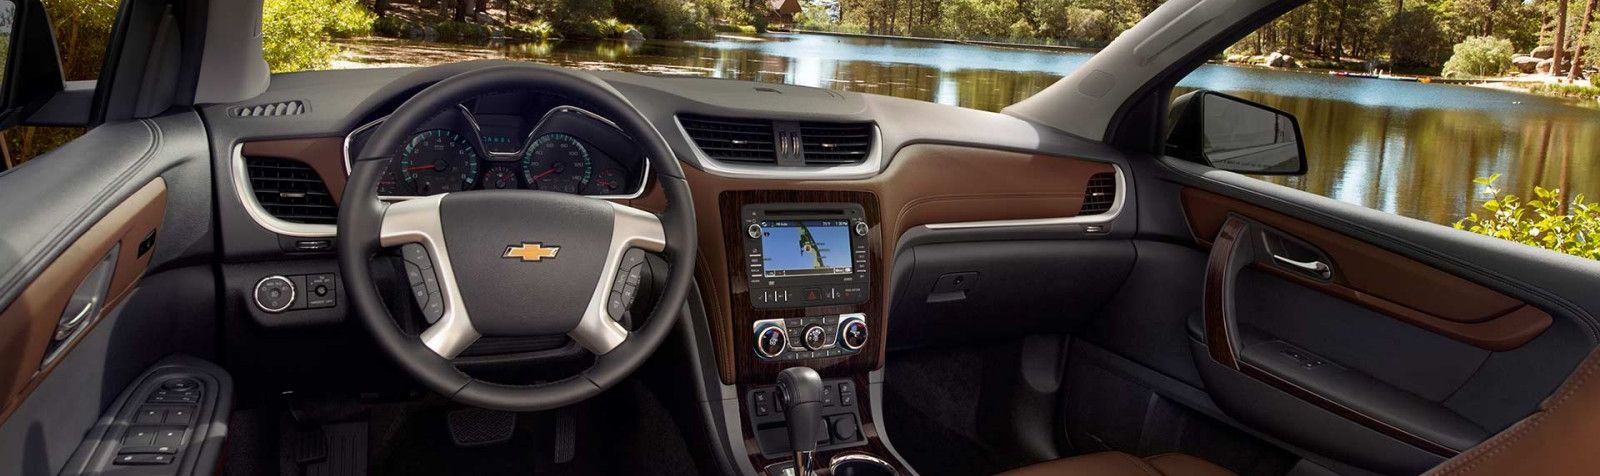 2017 Chevy Traverse Cabin